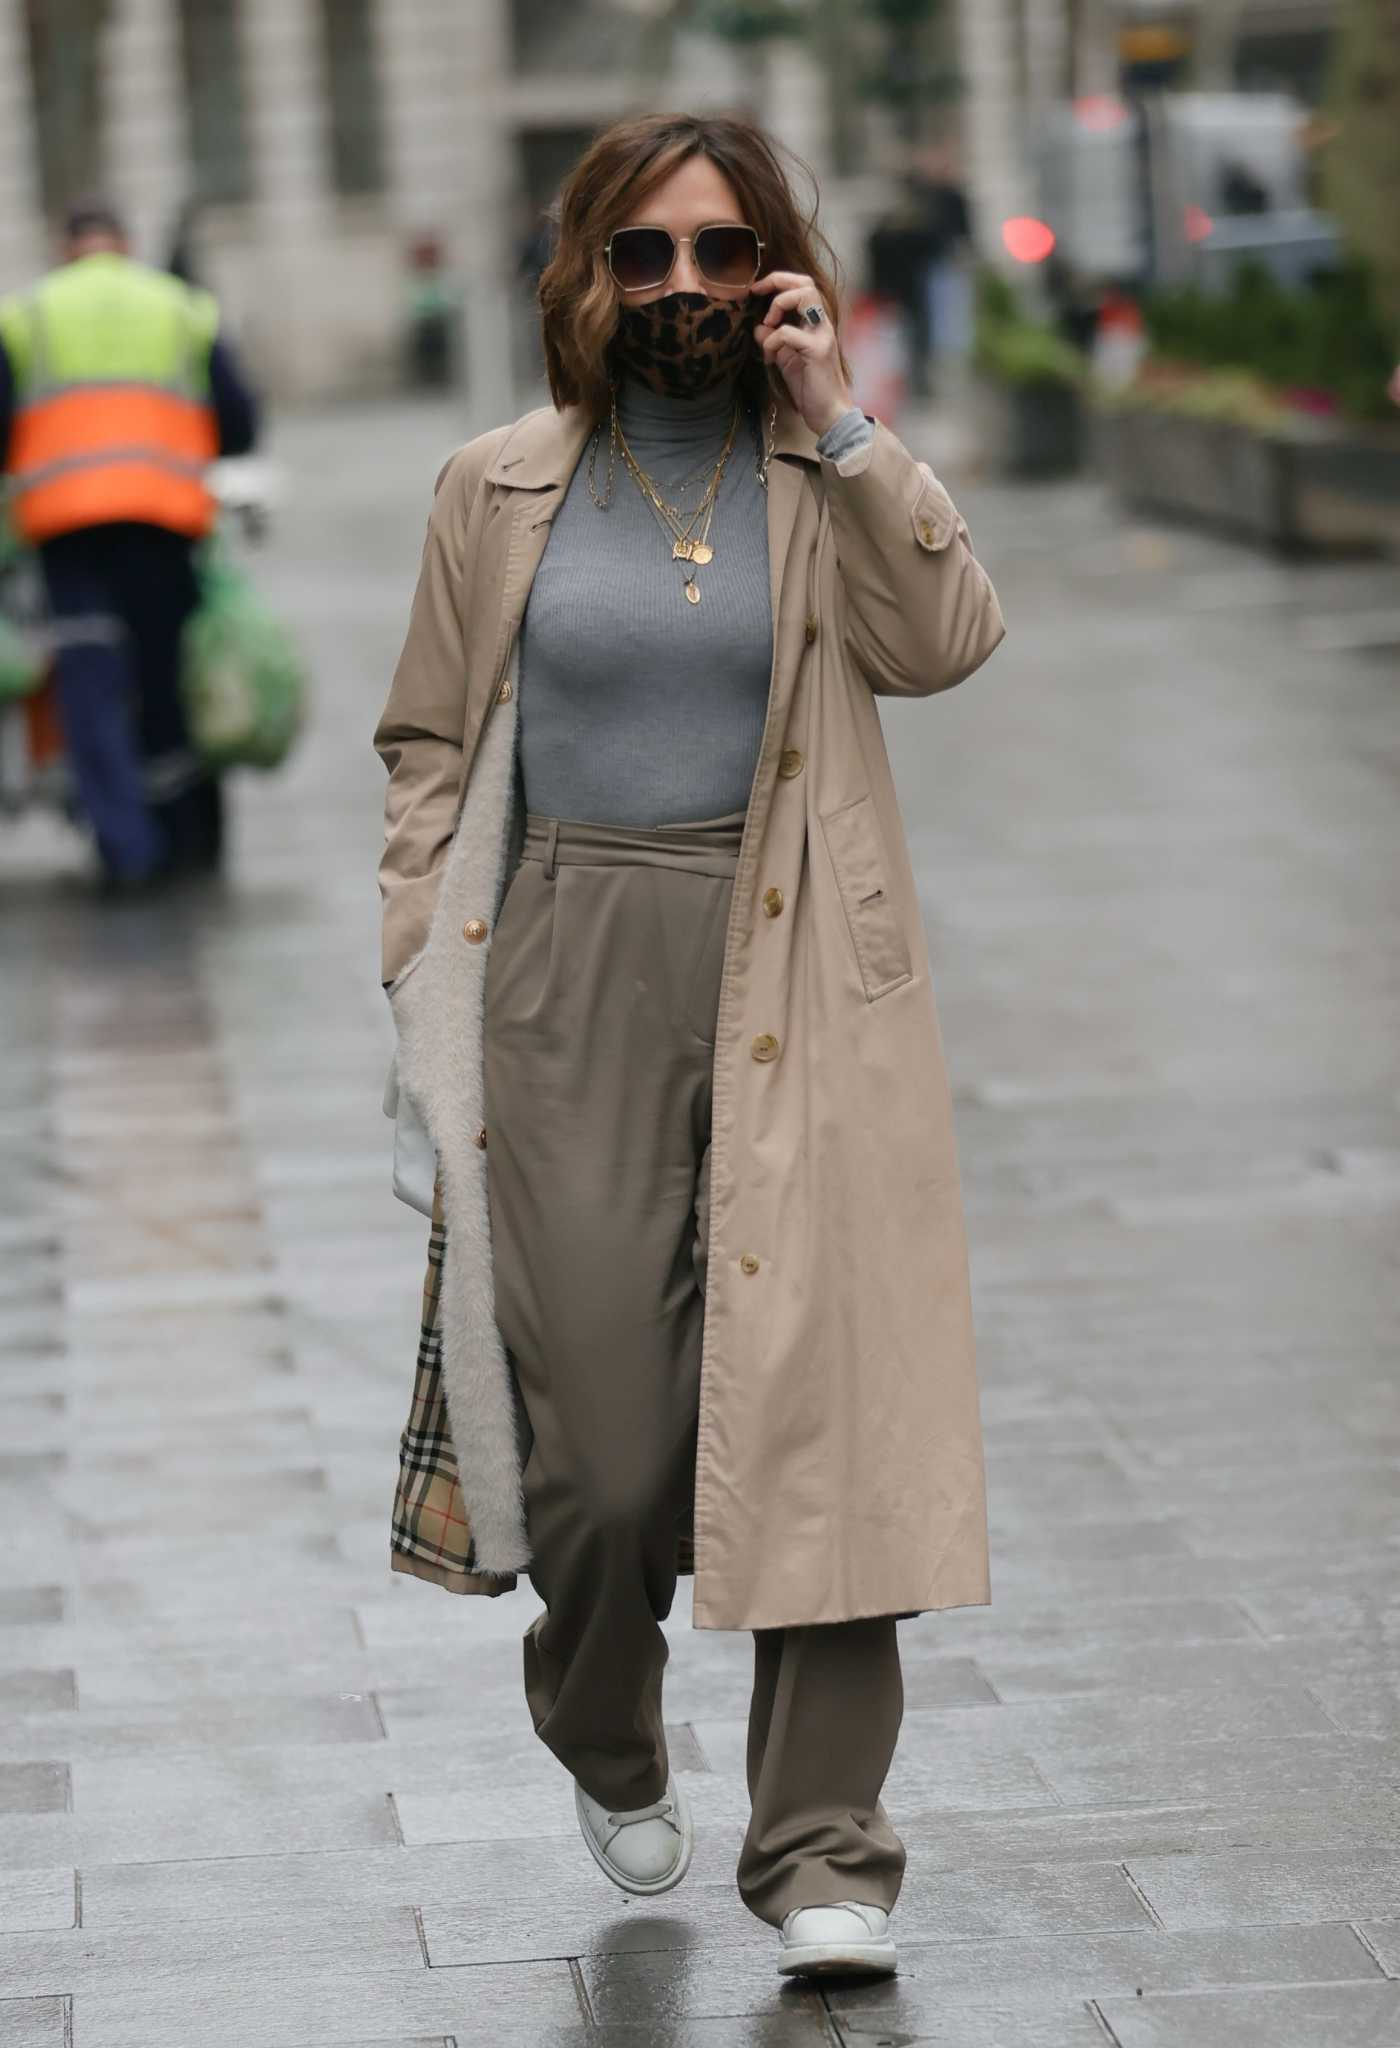 Myleene Klass in a Beige Trench Coat Arrives at the Smooth Radio in London 12/14/2020